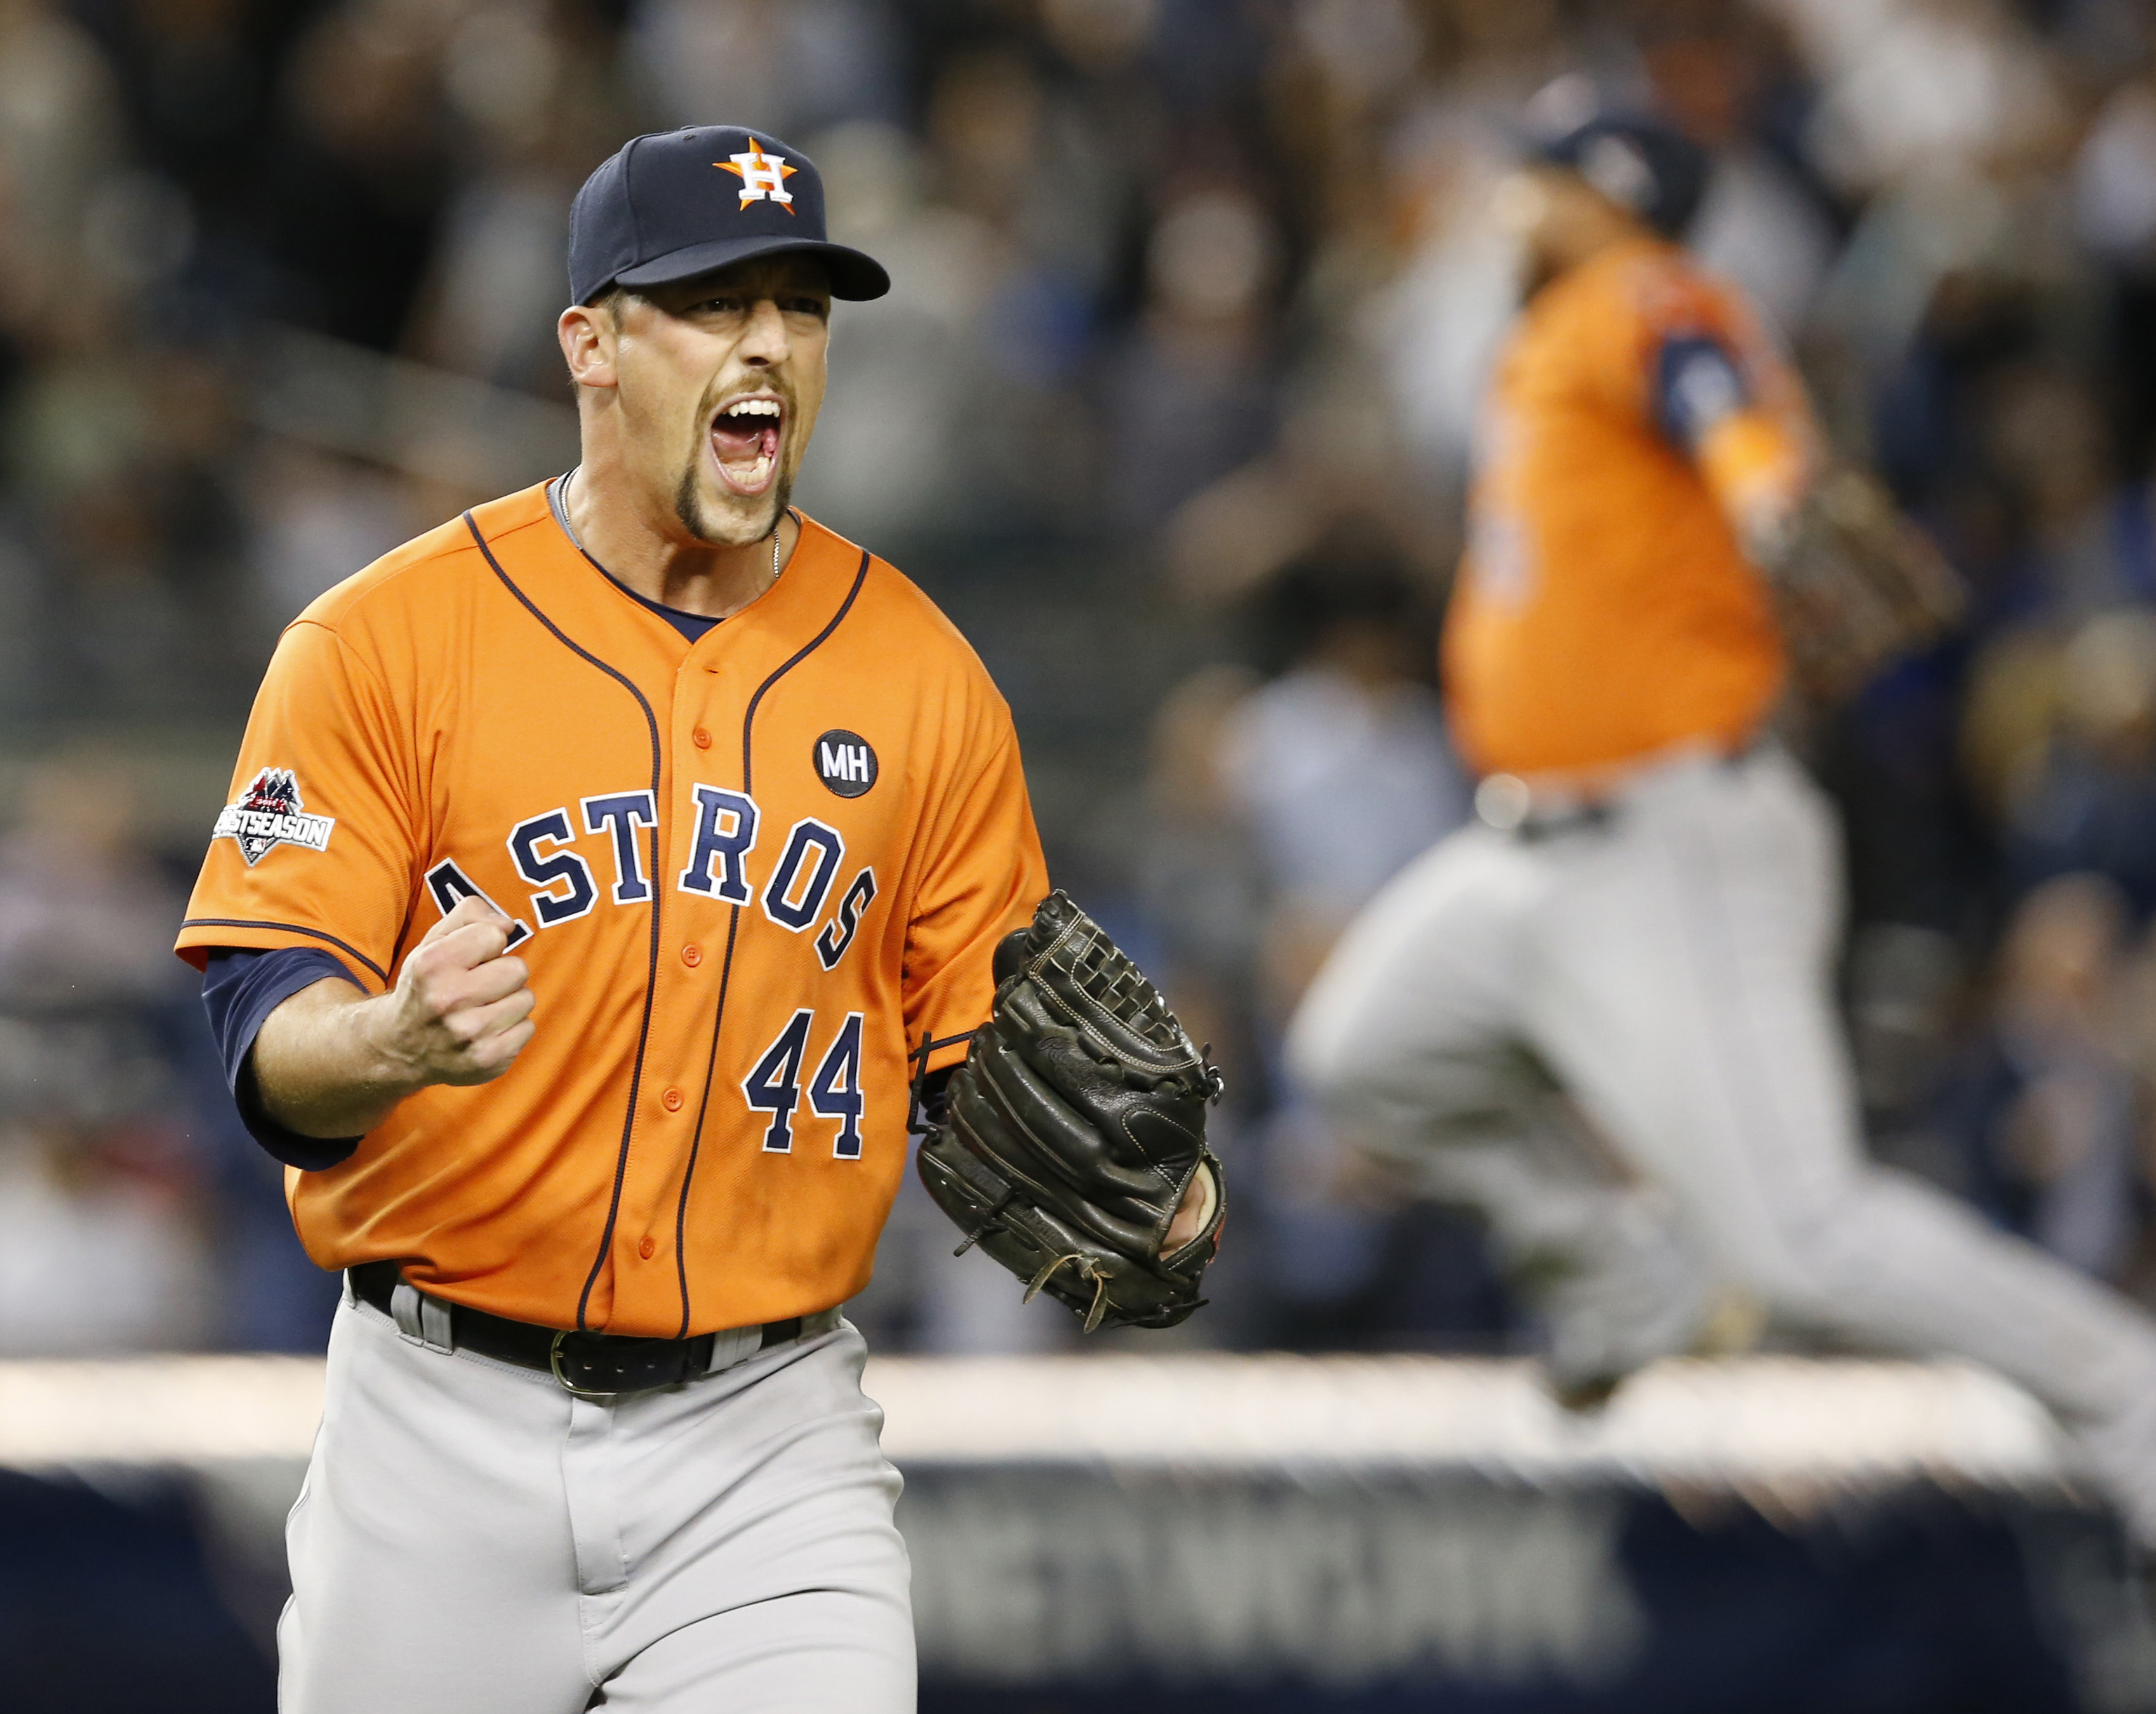 FILE - In this Oct. 6, 2015, file photo, Houston Astros relief pitcher Luke Gregerson (44) reacts as a fellow teammate leaps in the air at the final out of the Astros 3-0 shutout of the New York Yankees in the American League wild card baseball game at Ya